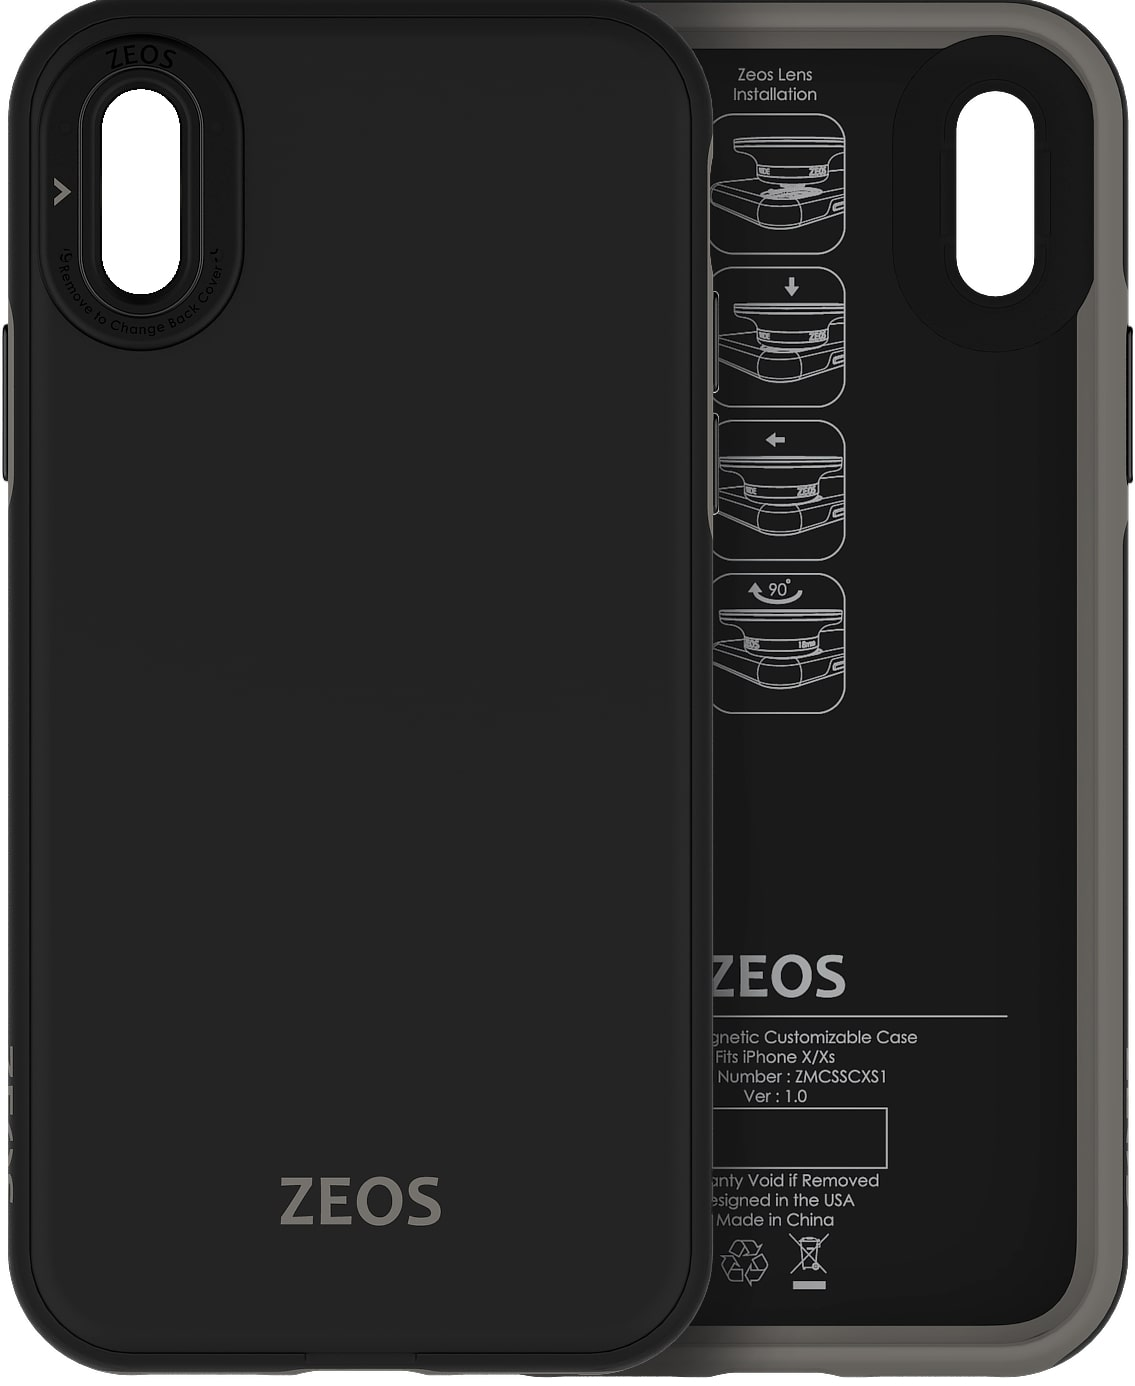 ZEOS 3 in 1 Battery Case for iPhone 7